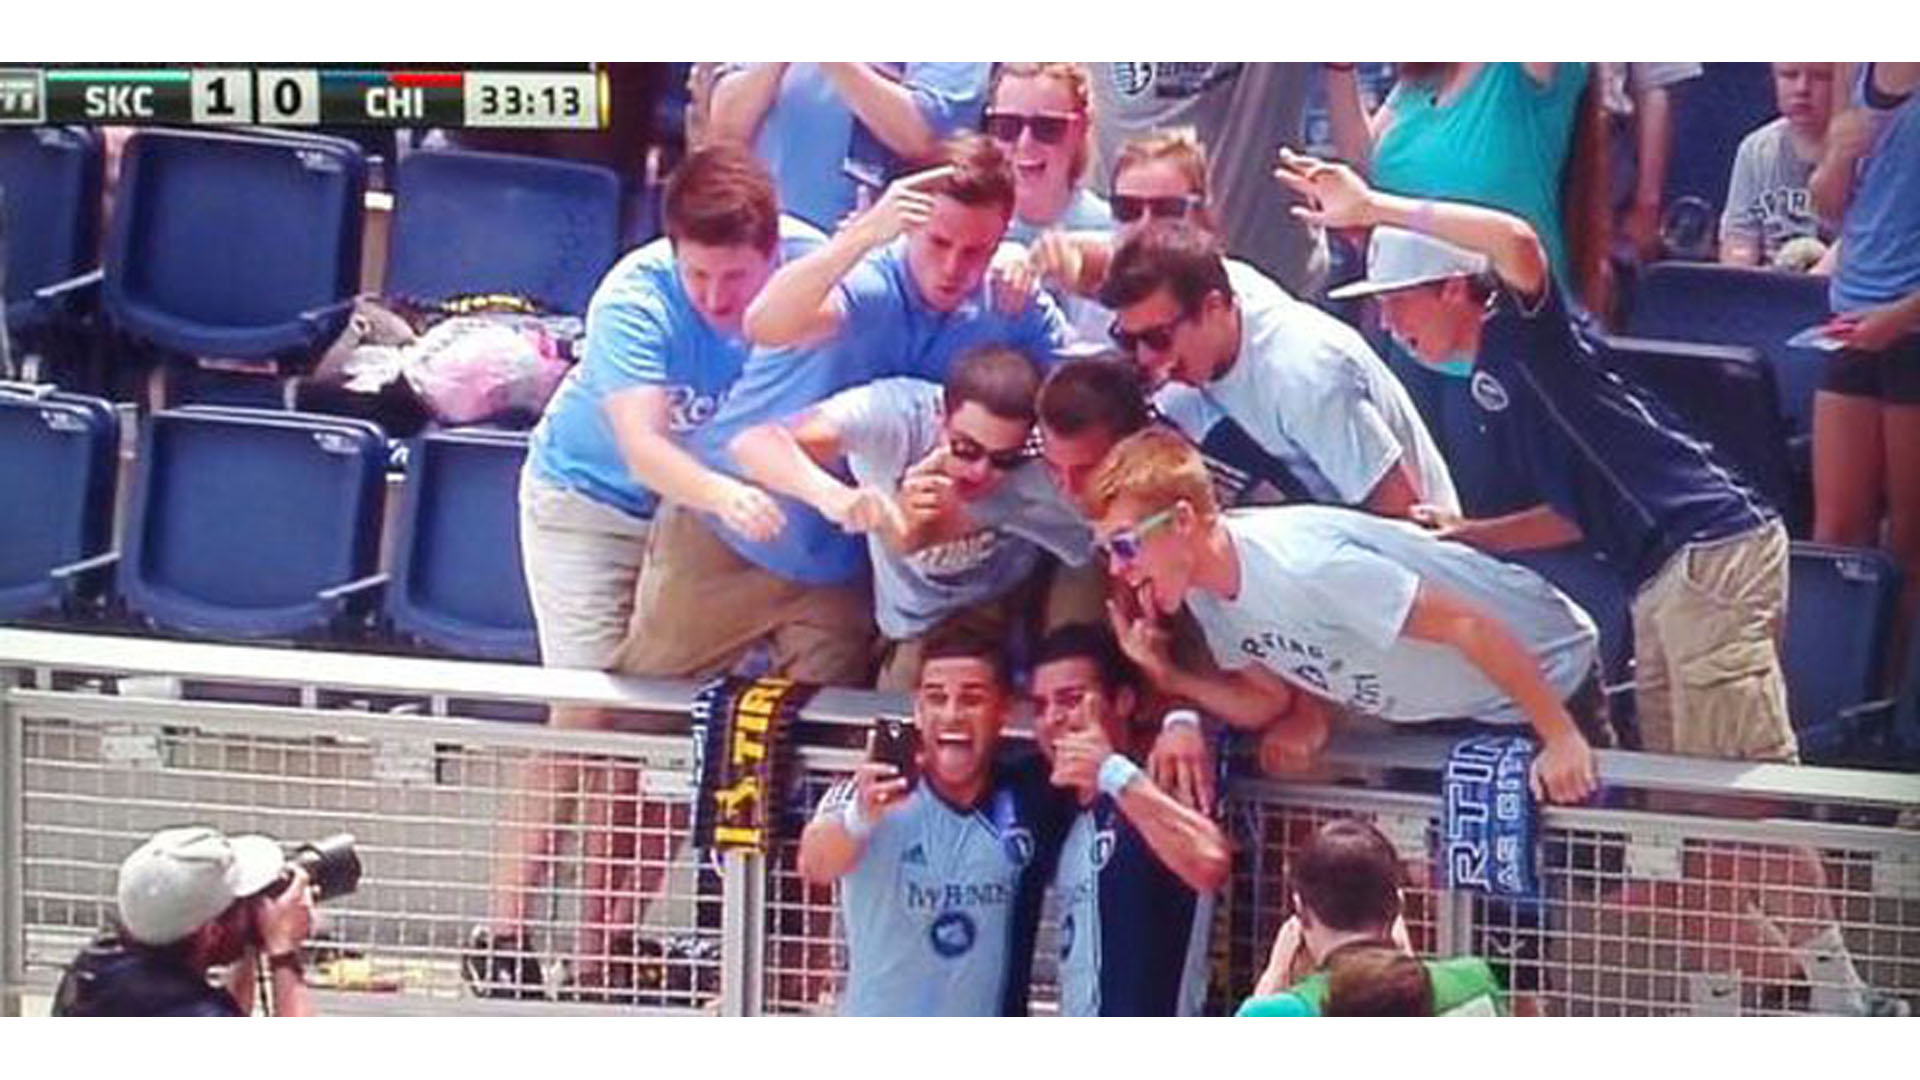 Sporting-kc-mls-070614-twitter-ftr